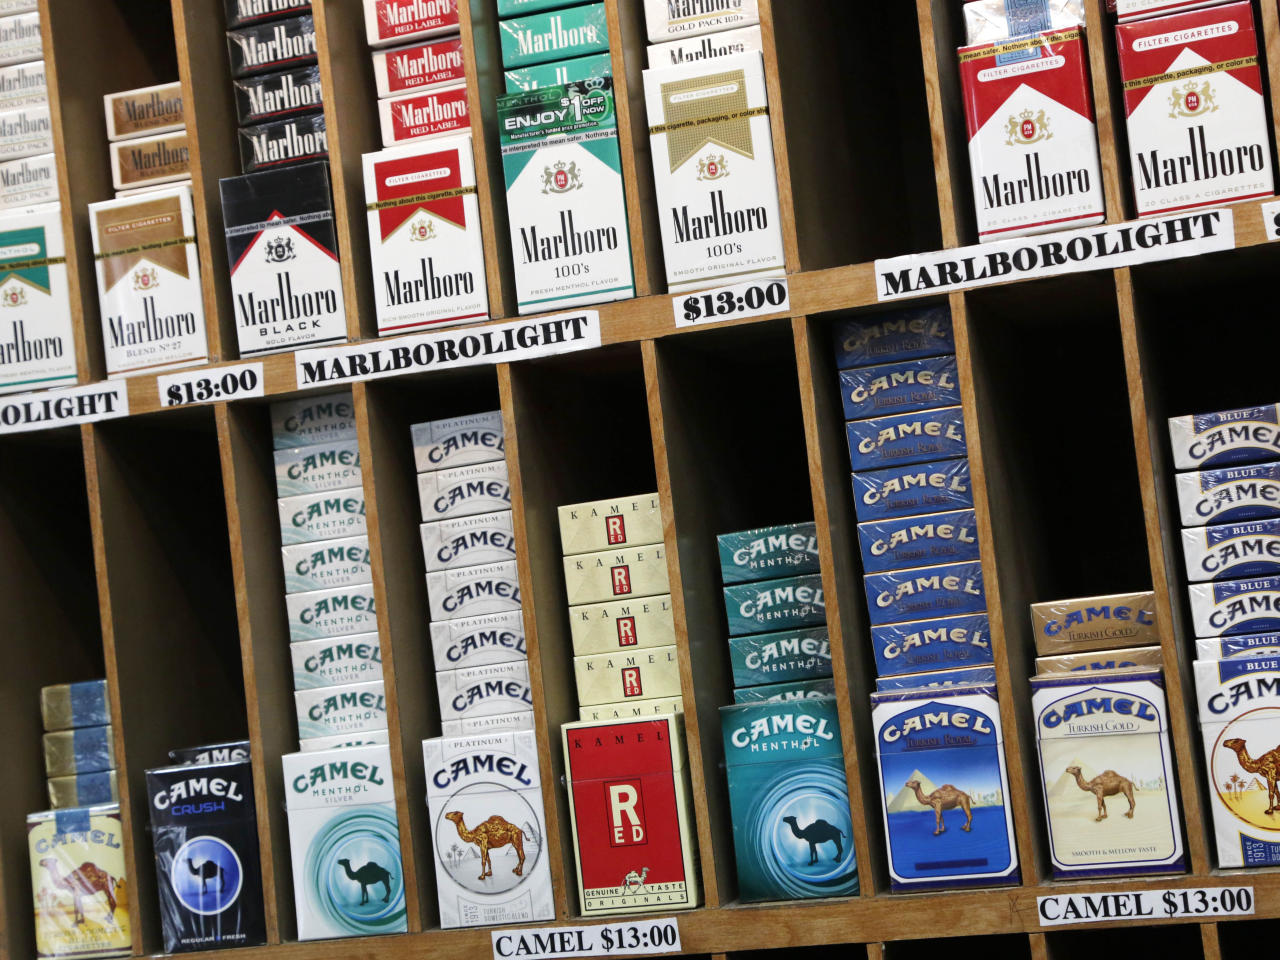 NYC raises smoking age to 21, sets cigarette pack minimum price at $10.50